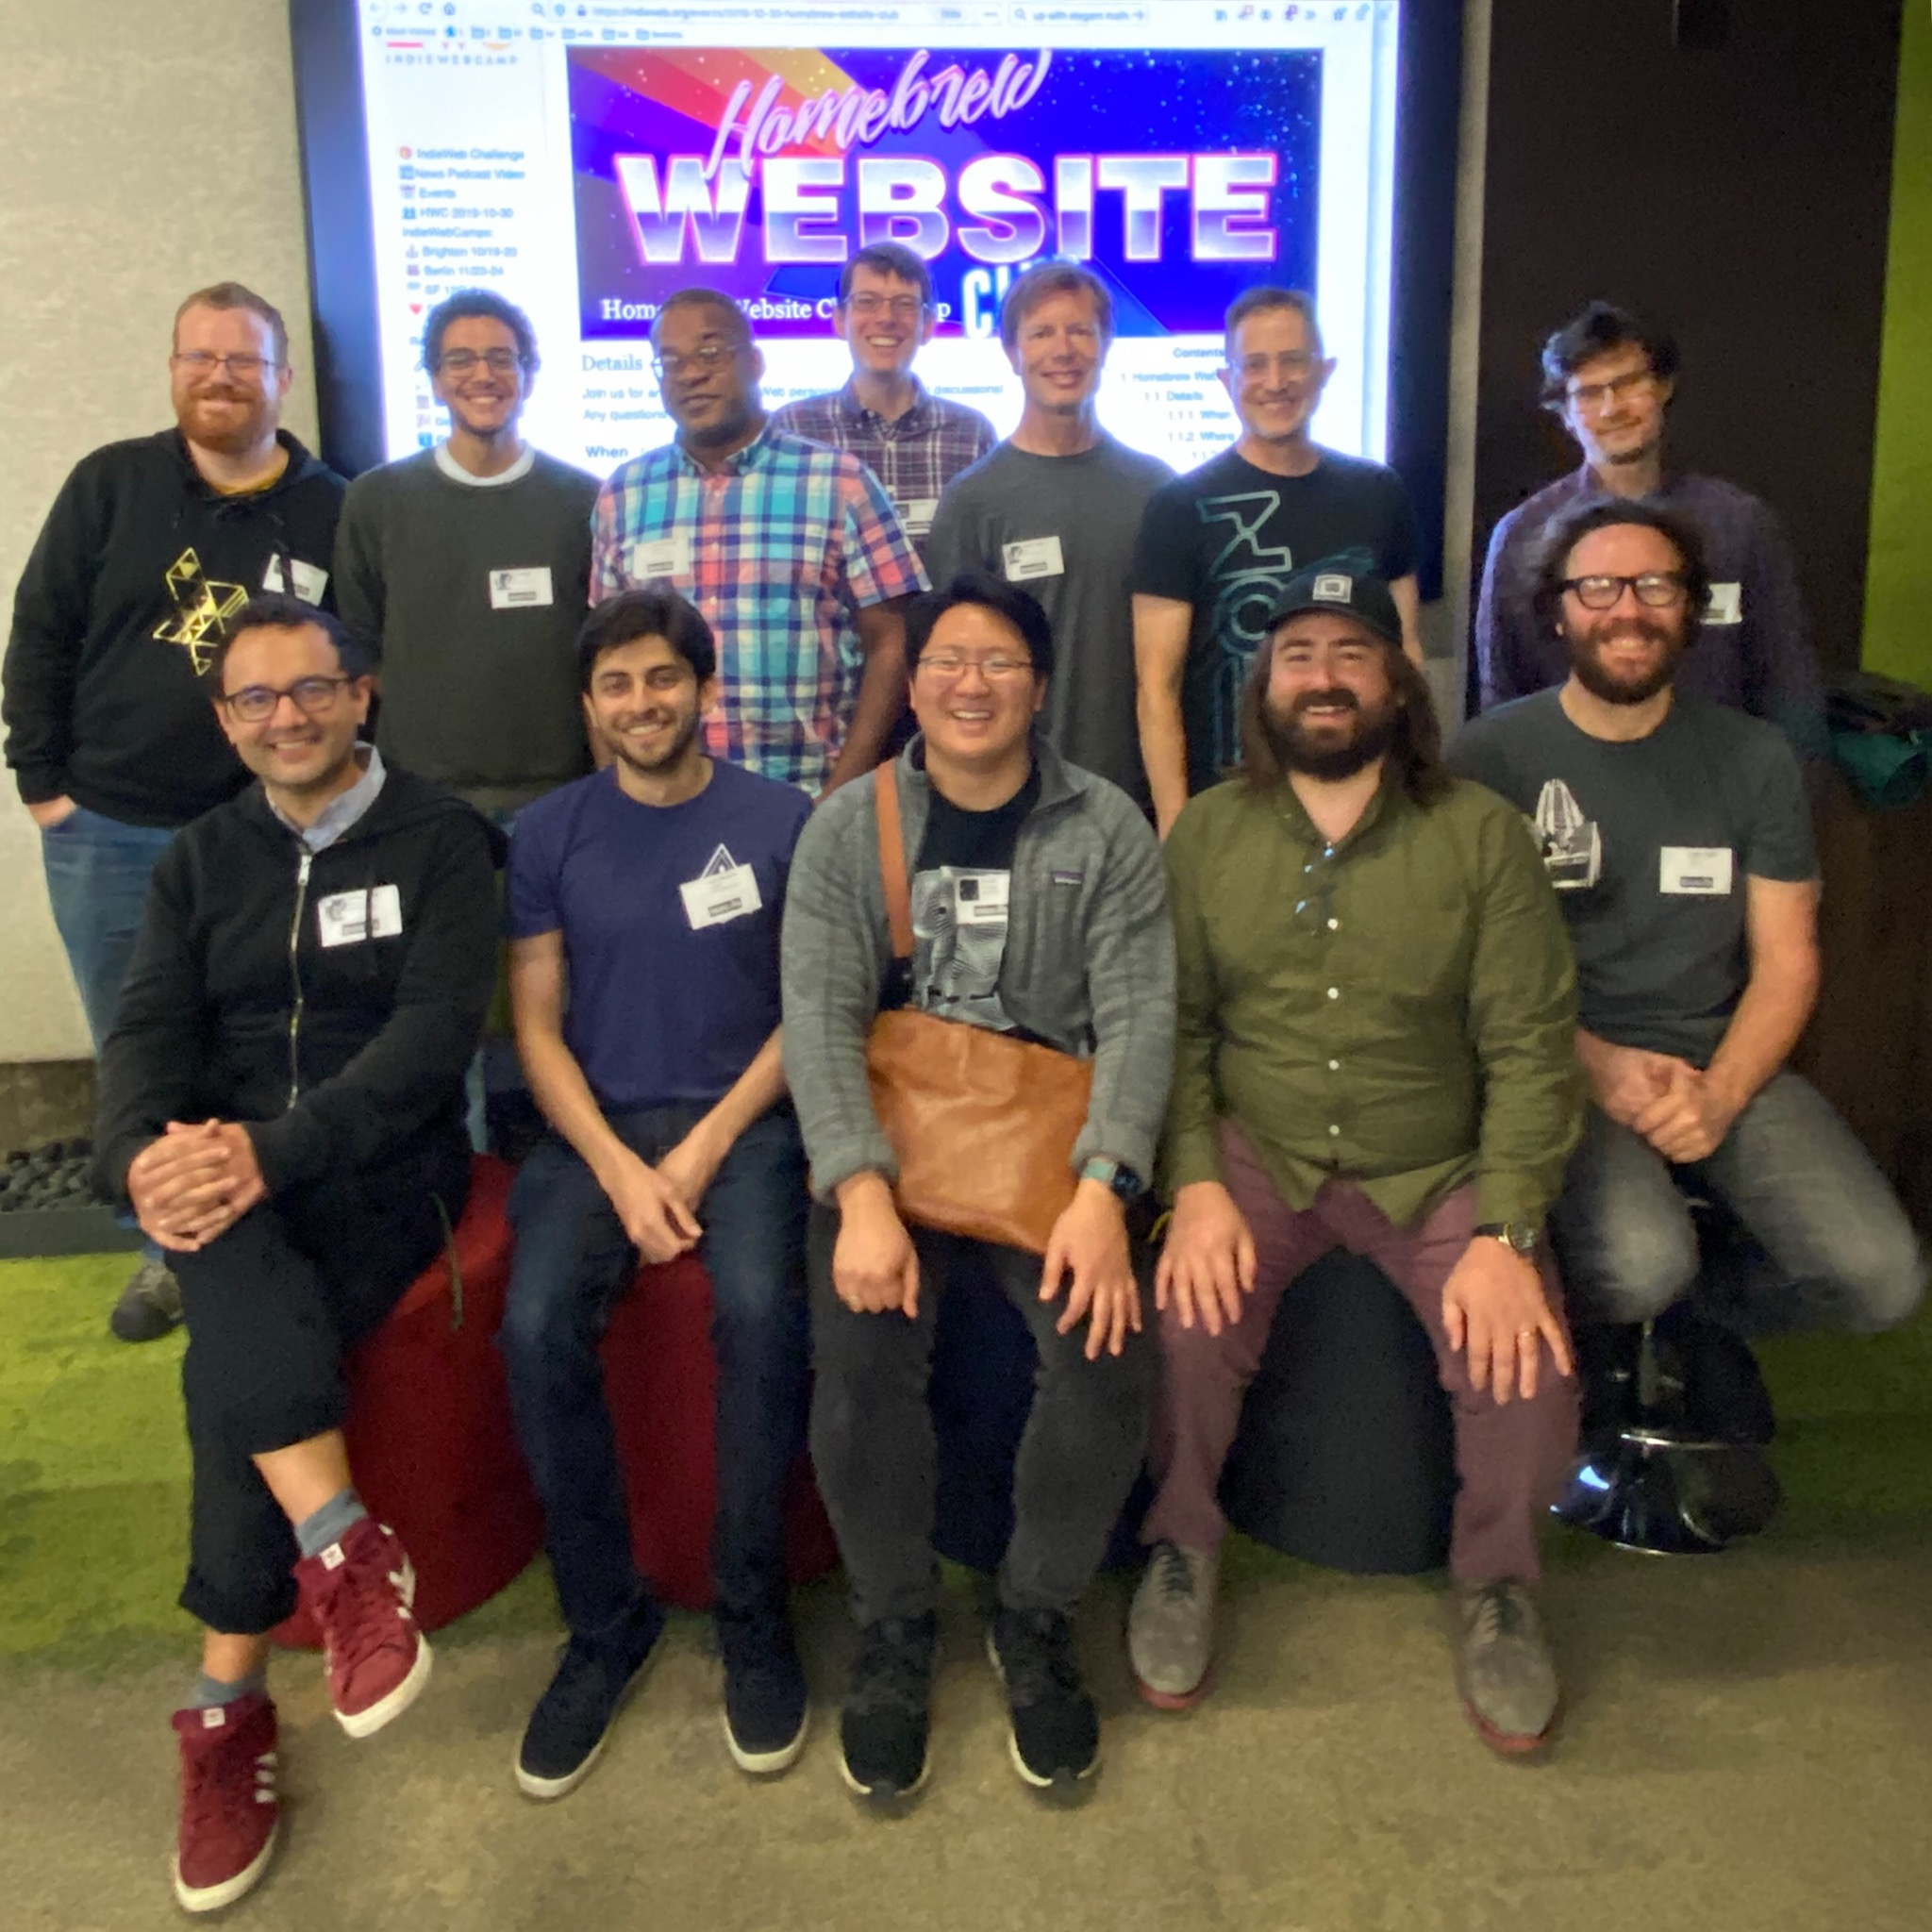 A dozen attendees of Homebrew Website Club / LocalFirst / OfflineFirst meetup at Mozilla San Francisco with the HWC event wiki page on a screen behind them